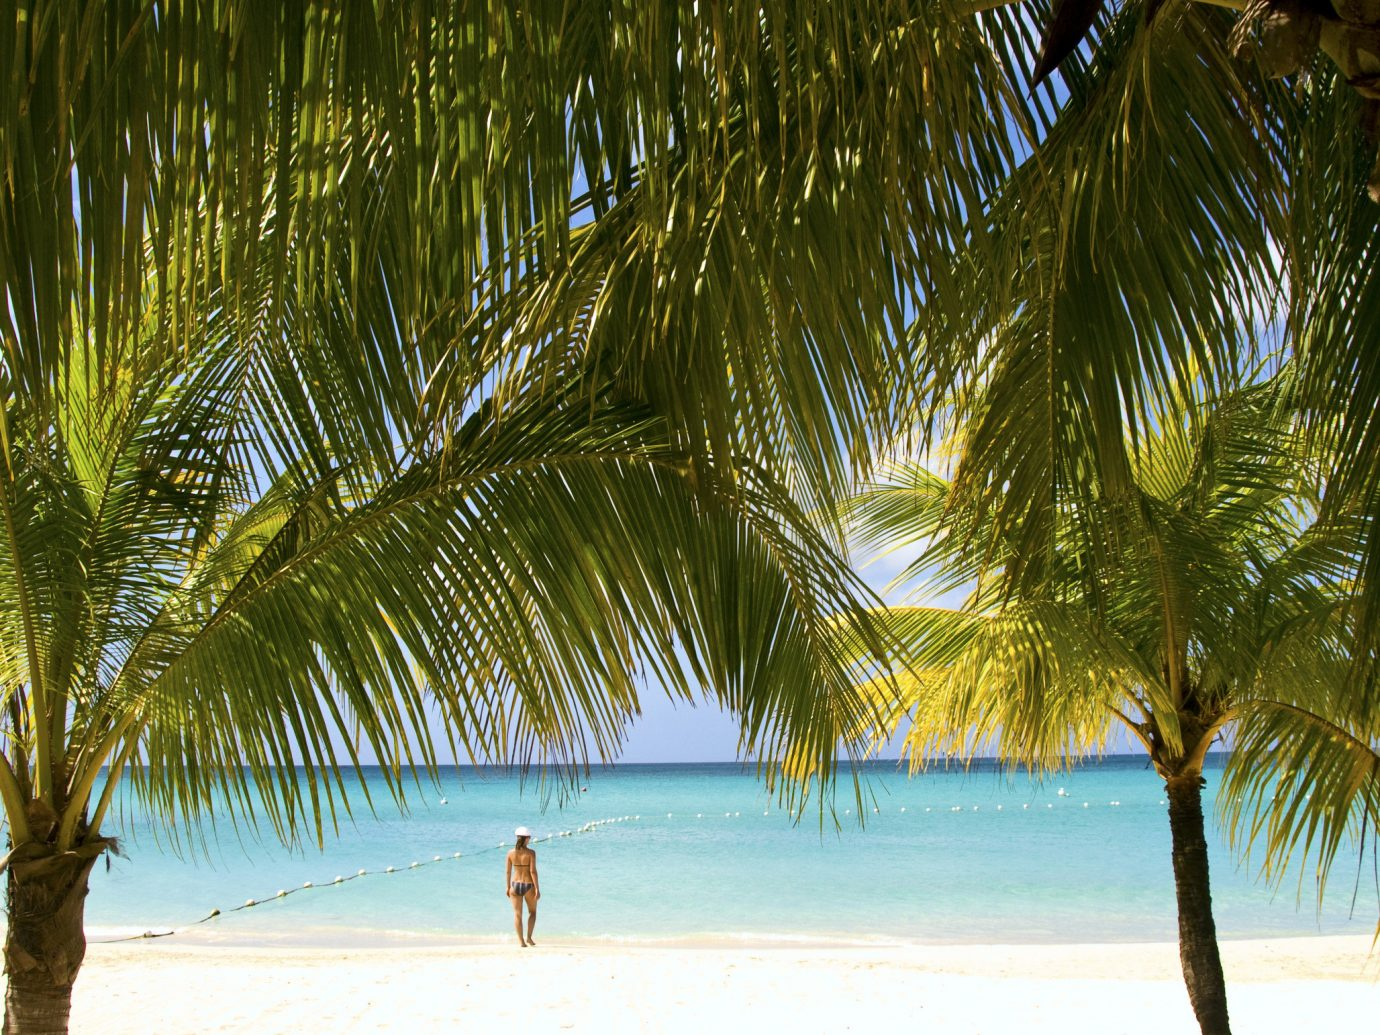 Trip Ideas tree outdoor plant water Beach palm body of water palm family arecales Ocean woody plant Sea tropics Coast sand sunlight shore sandy